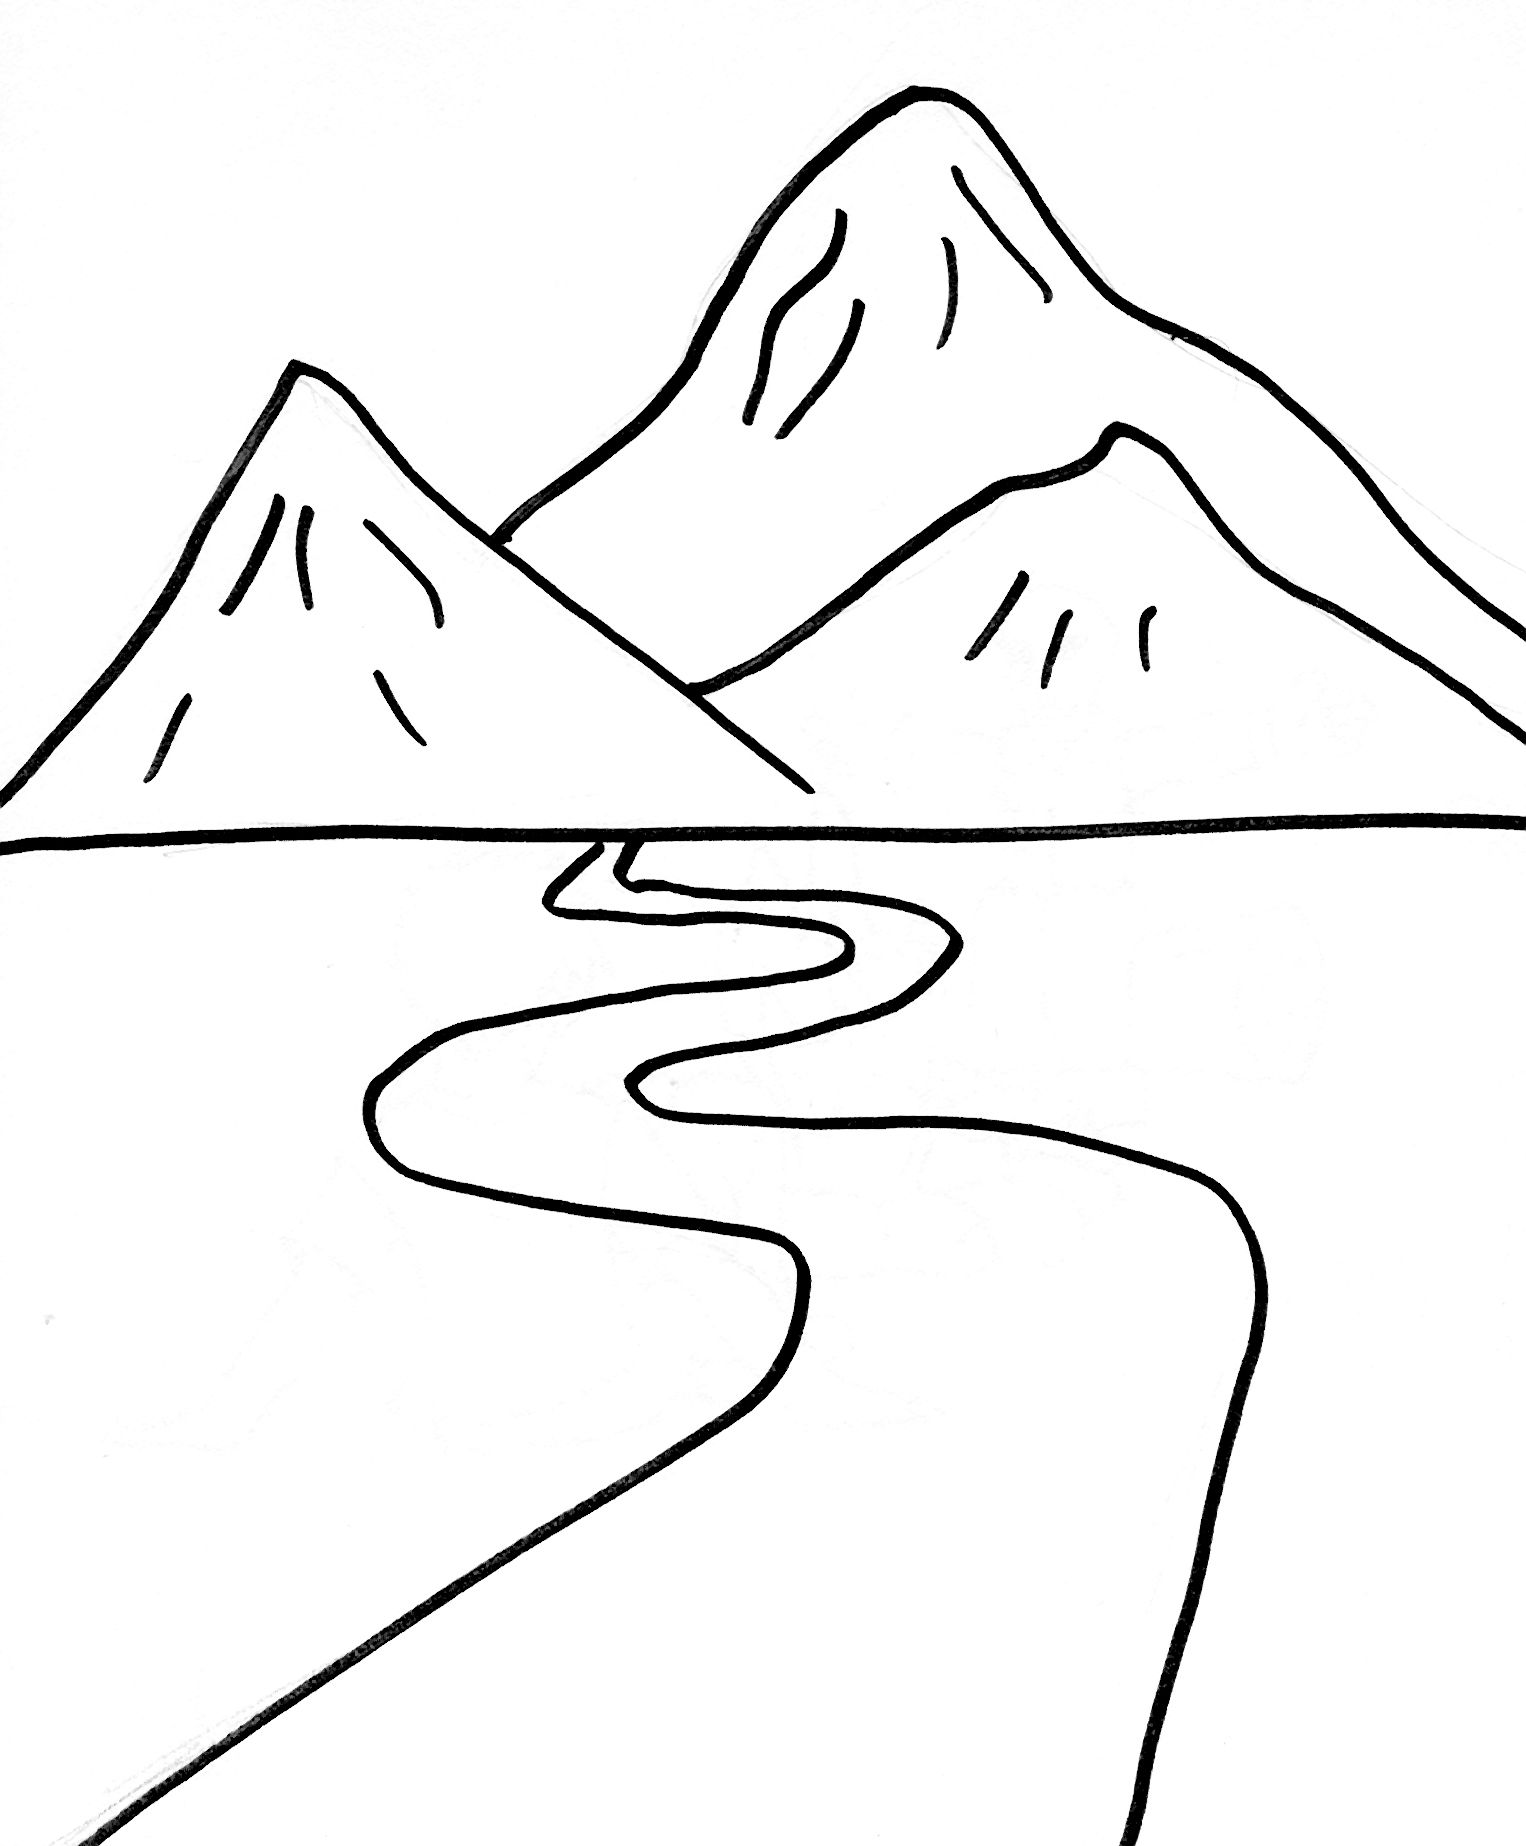 Pic4 Jpg 1526 1846 Mountain Drawing Coloring Pages Nature